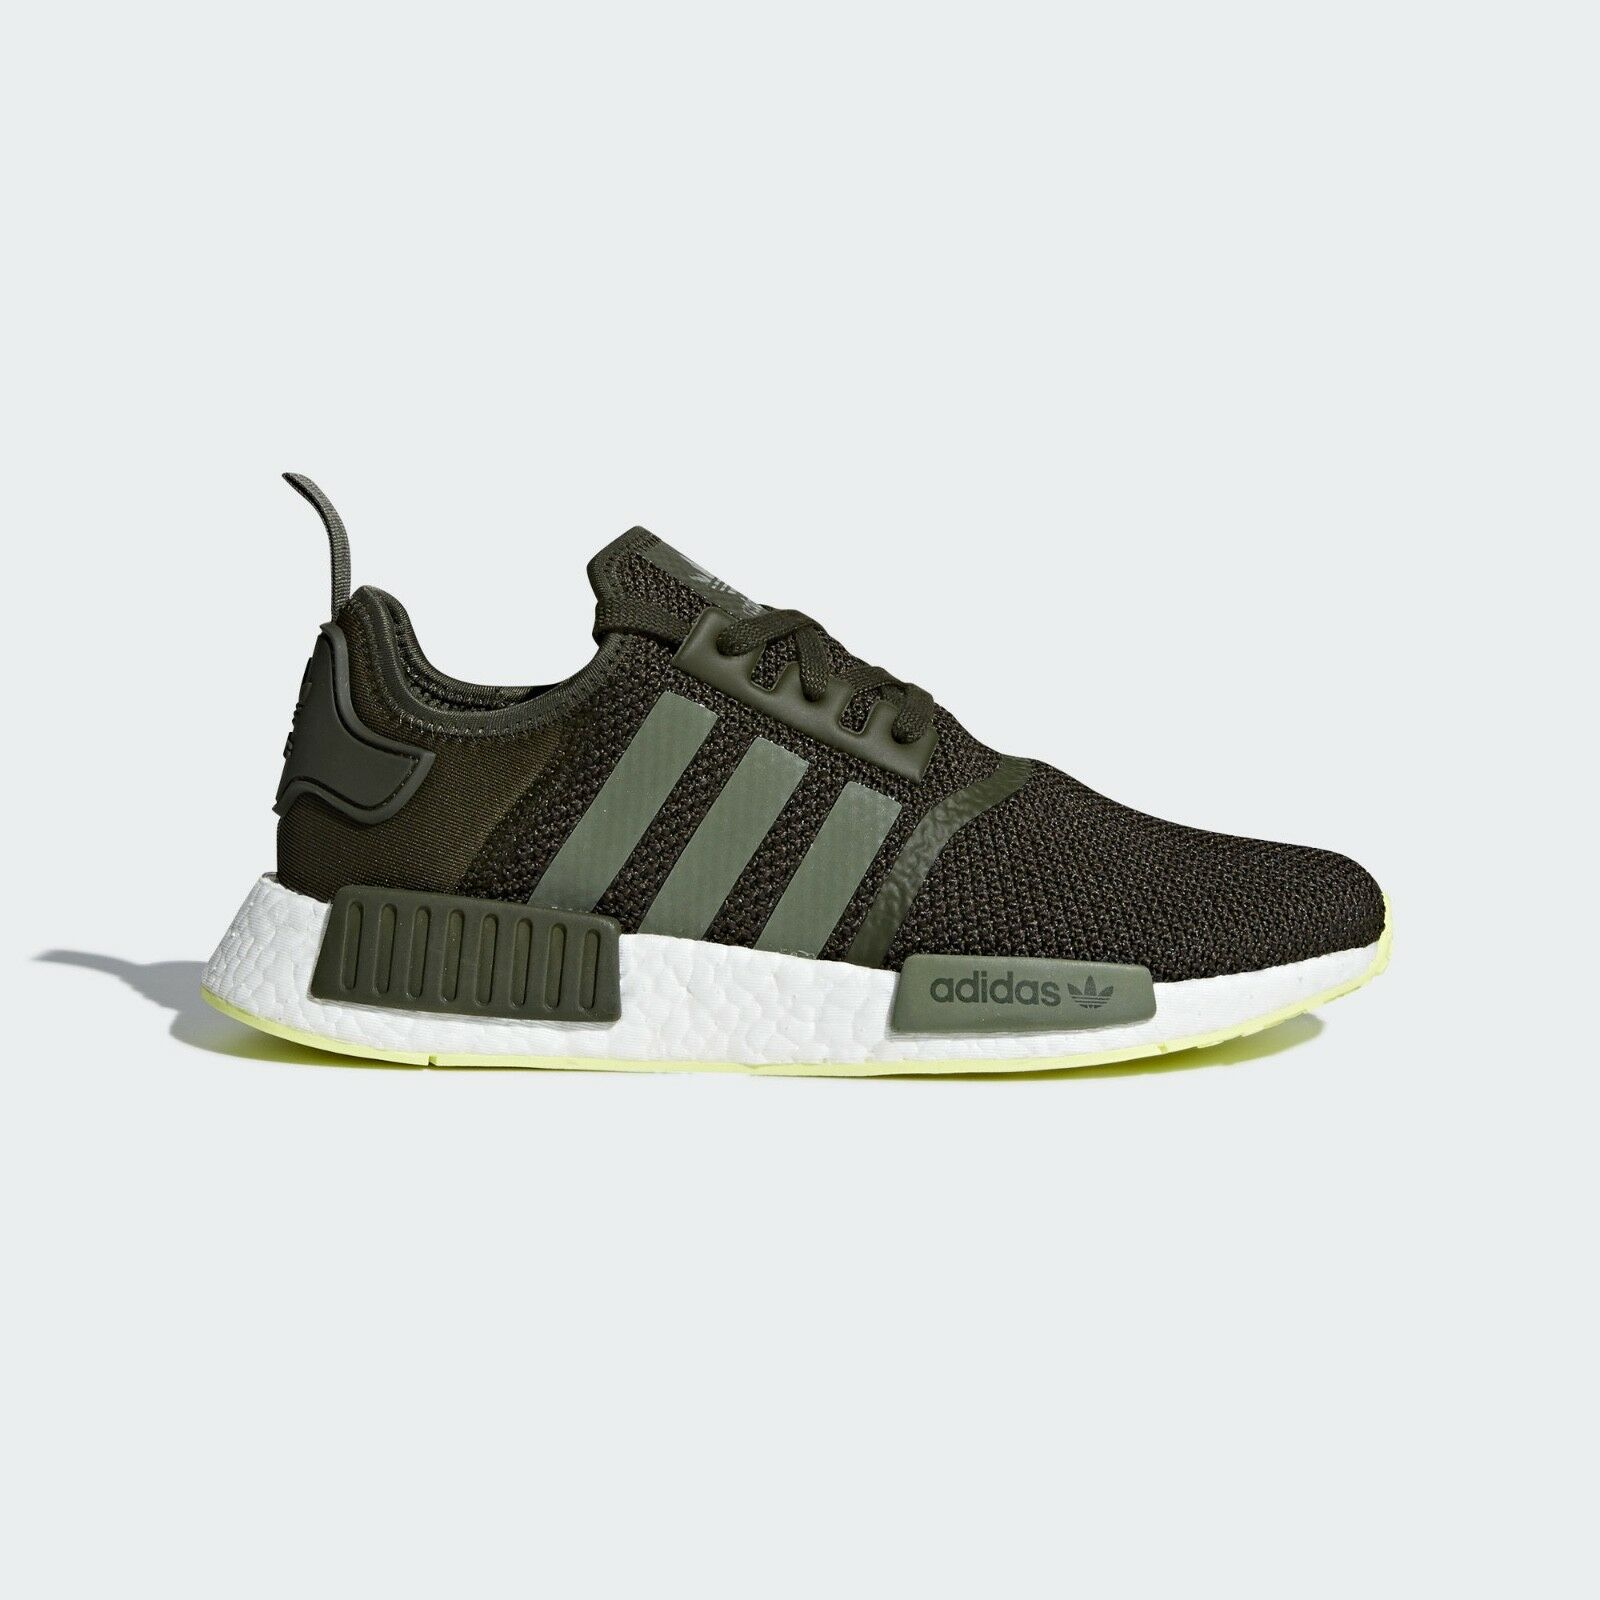 NEW adidas NMD_R1 shoes Men's  color  Night Cargo   Base Green size 14